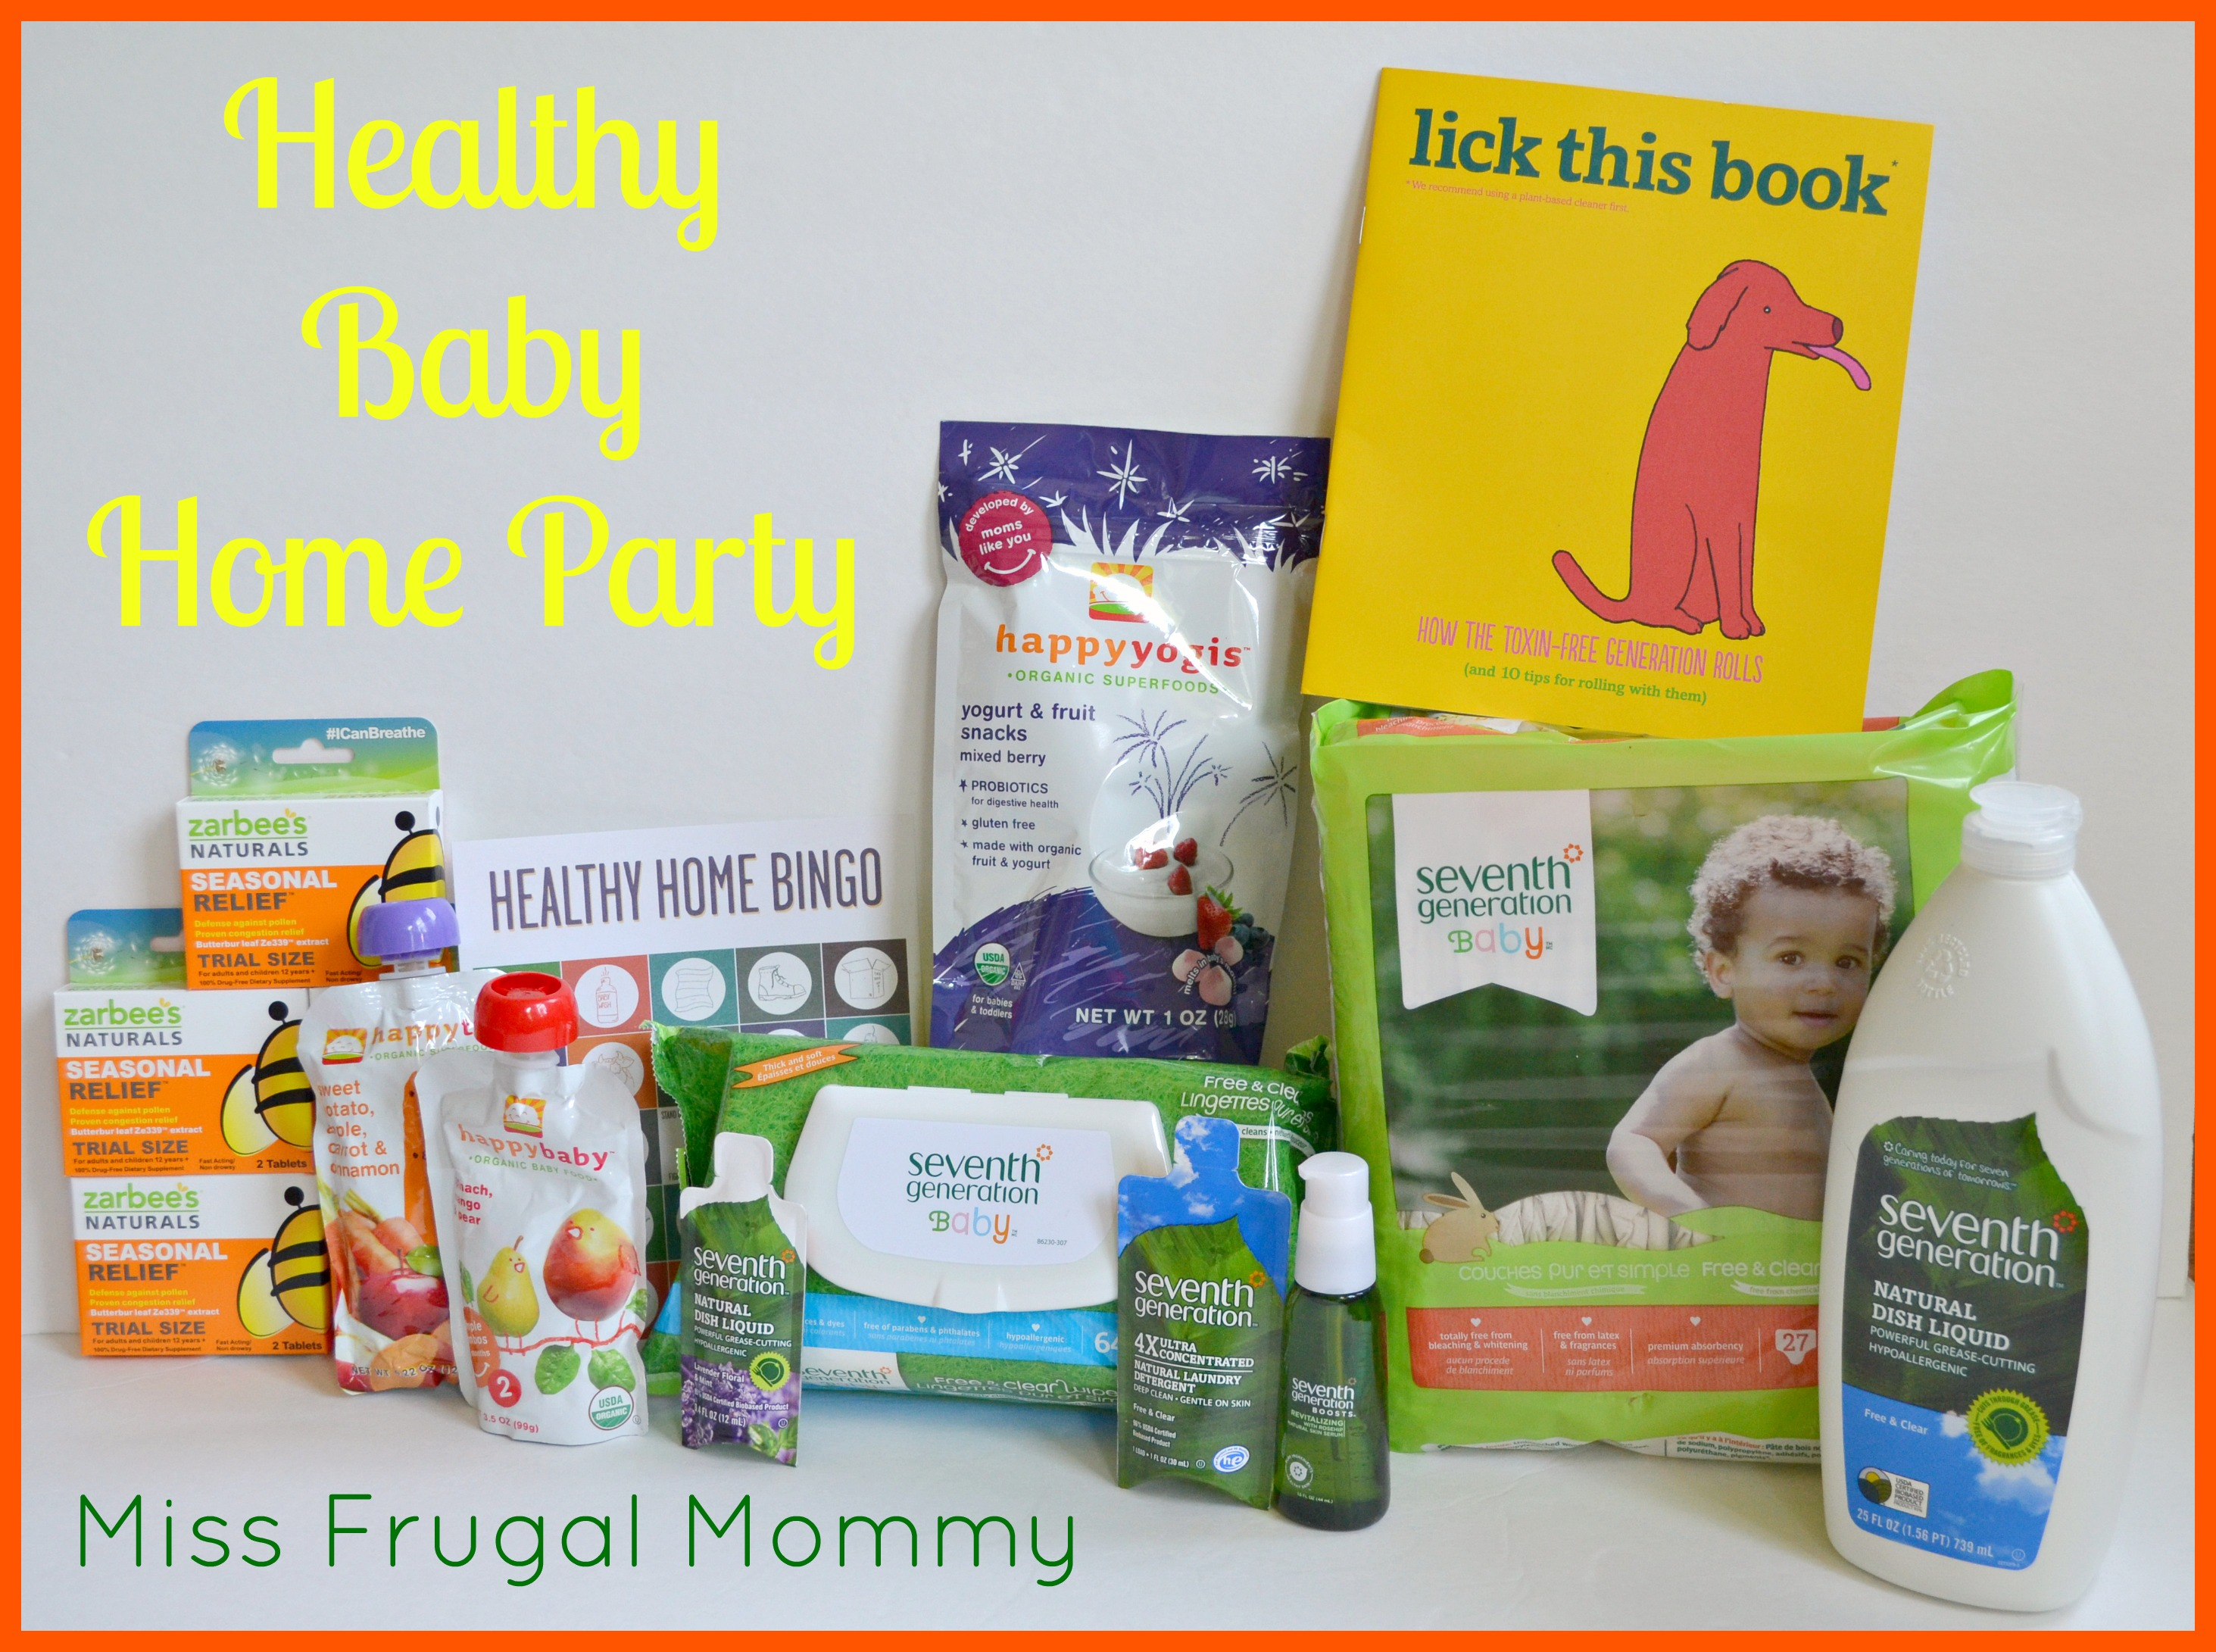 Seventh Generation: Healthy Baby Home Party